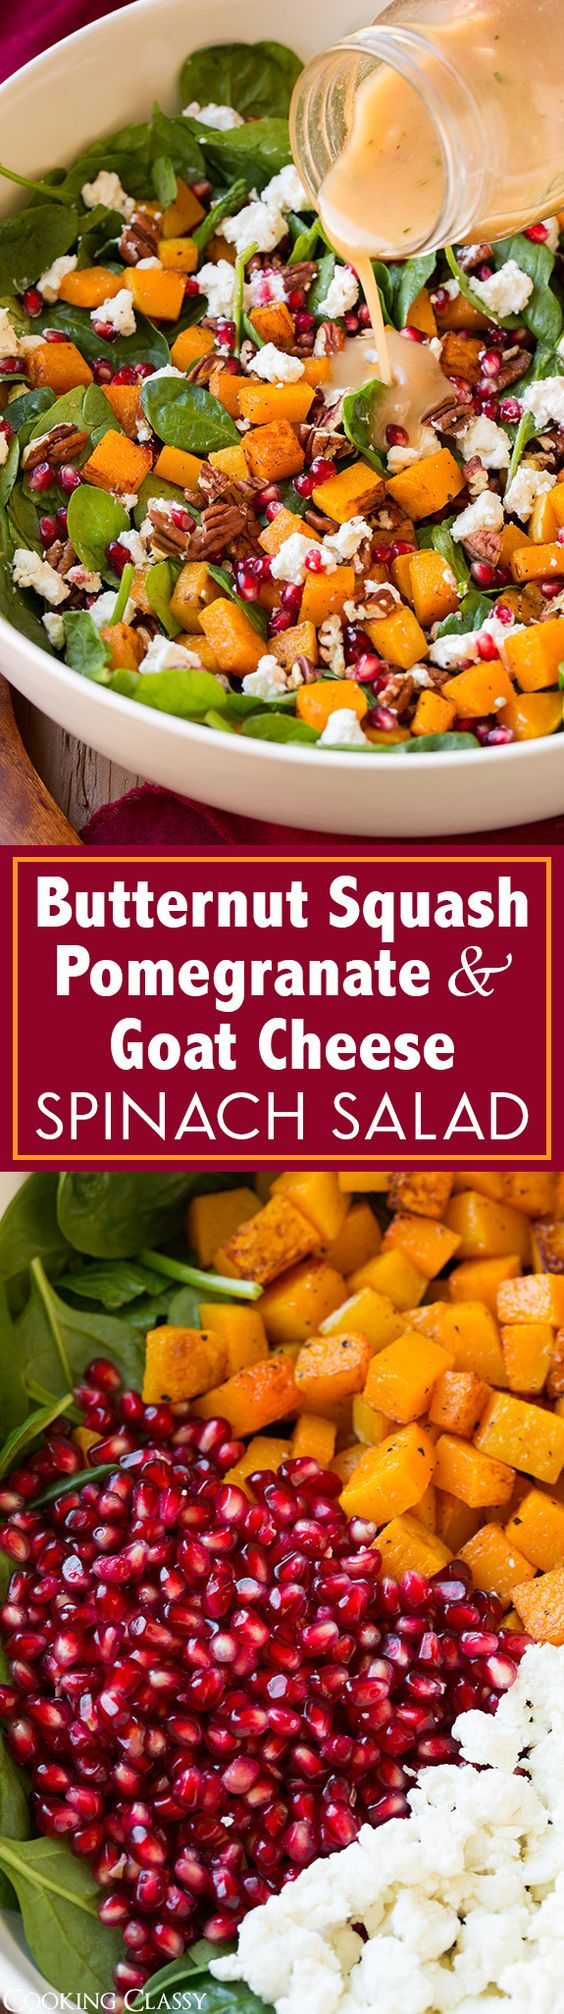 Butternut Squash, Pomegranate and Goat Cheese Spinach Salad with Red ...